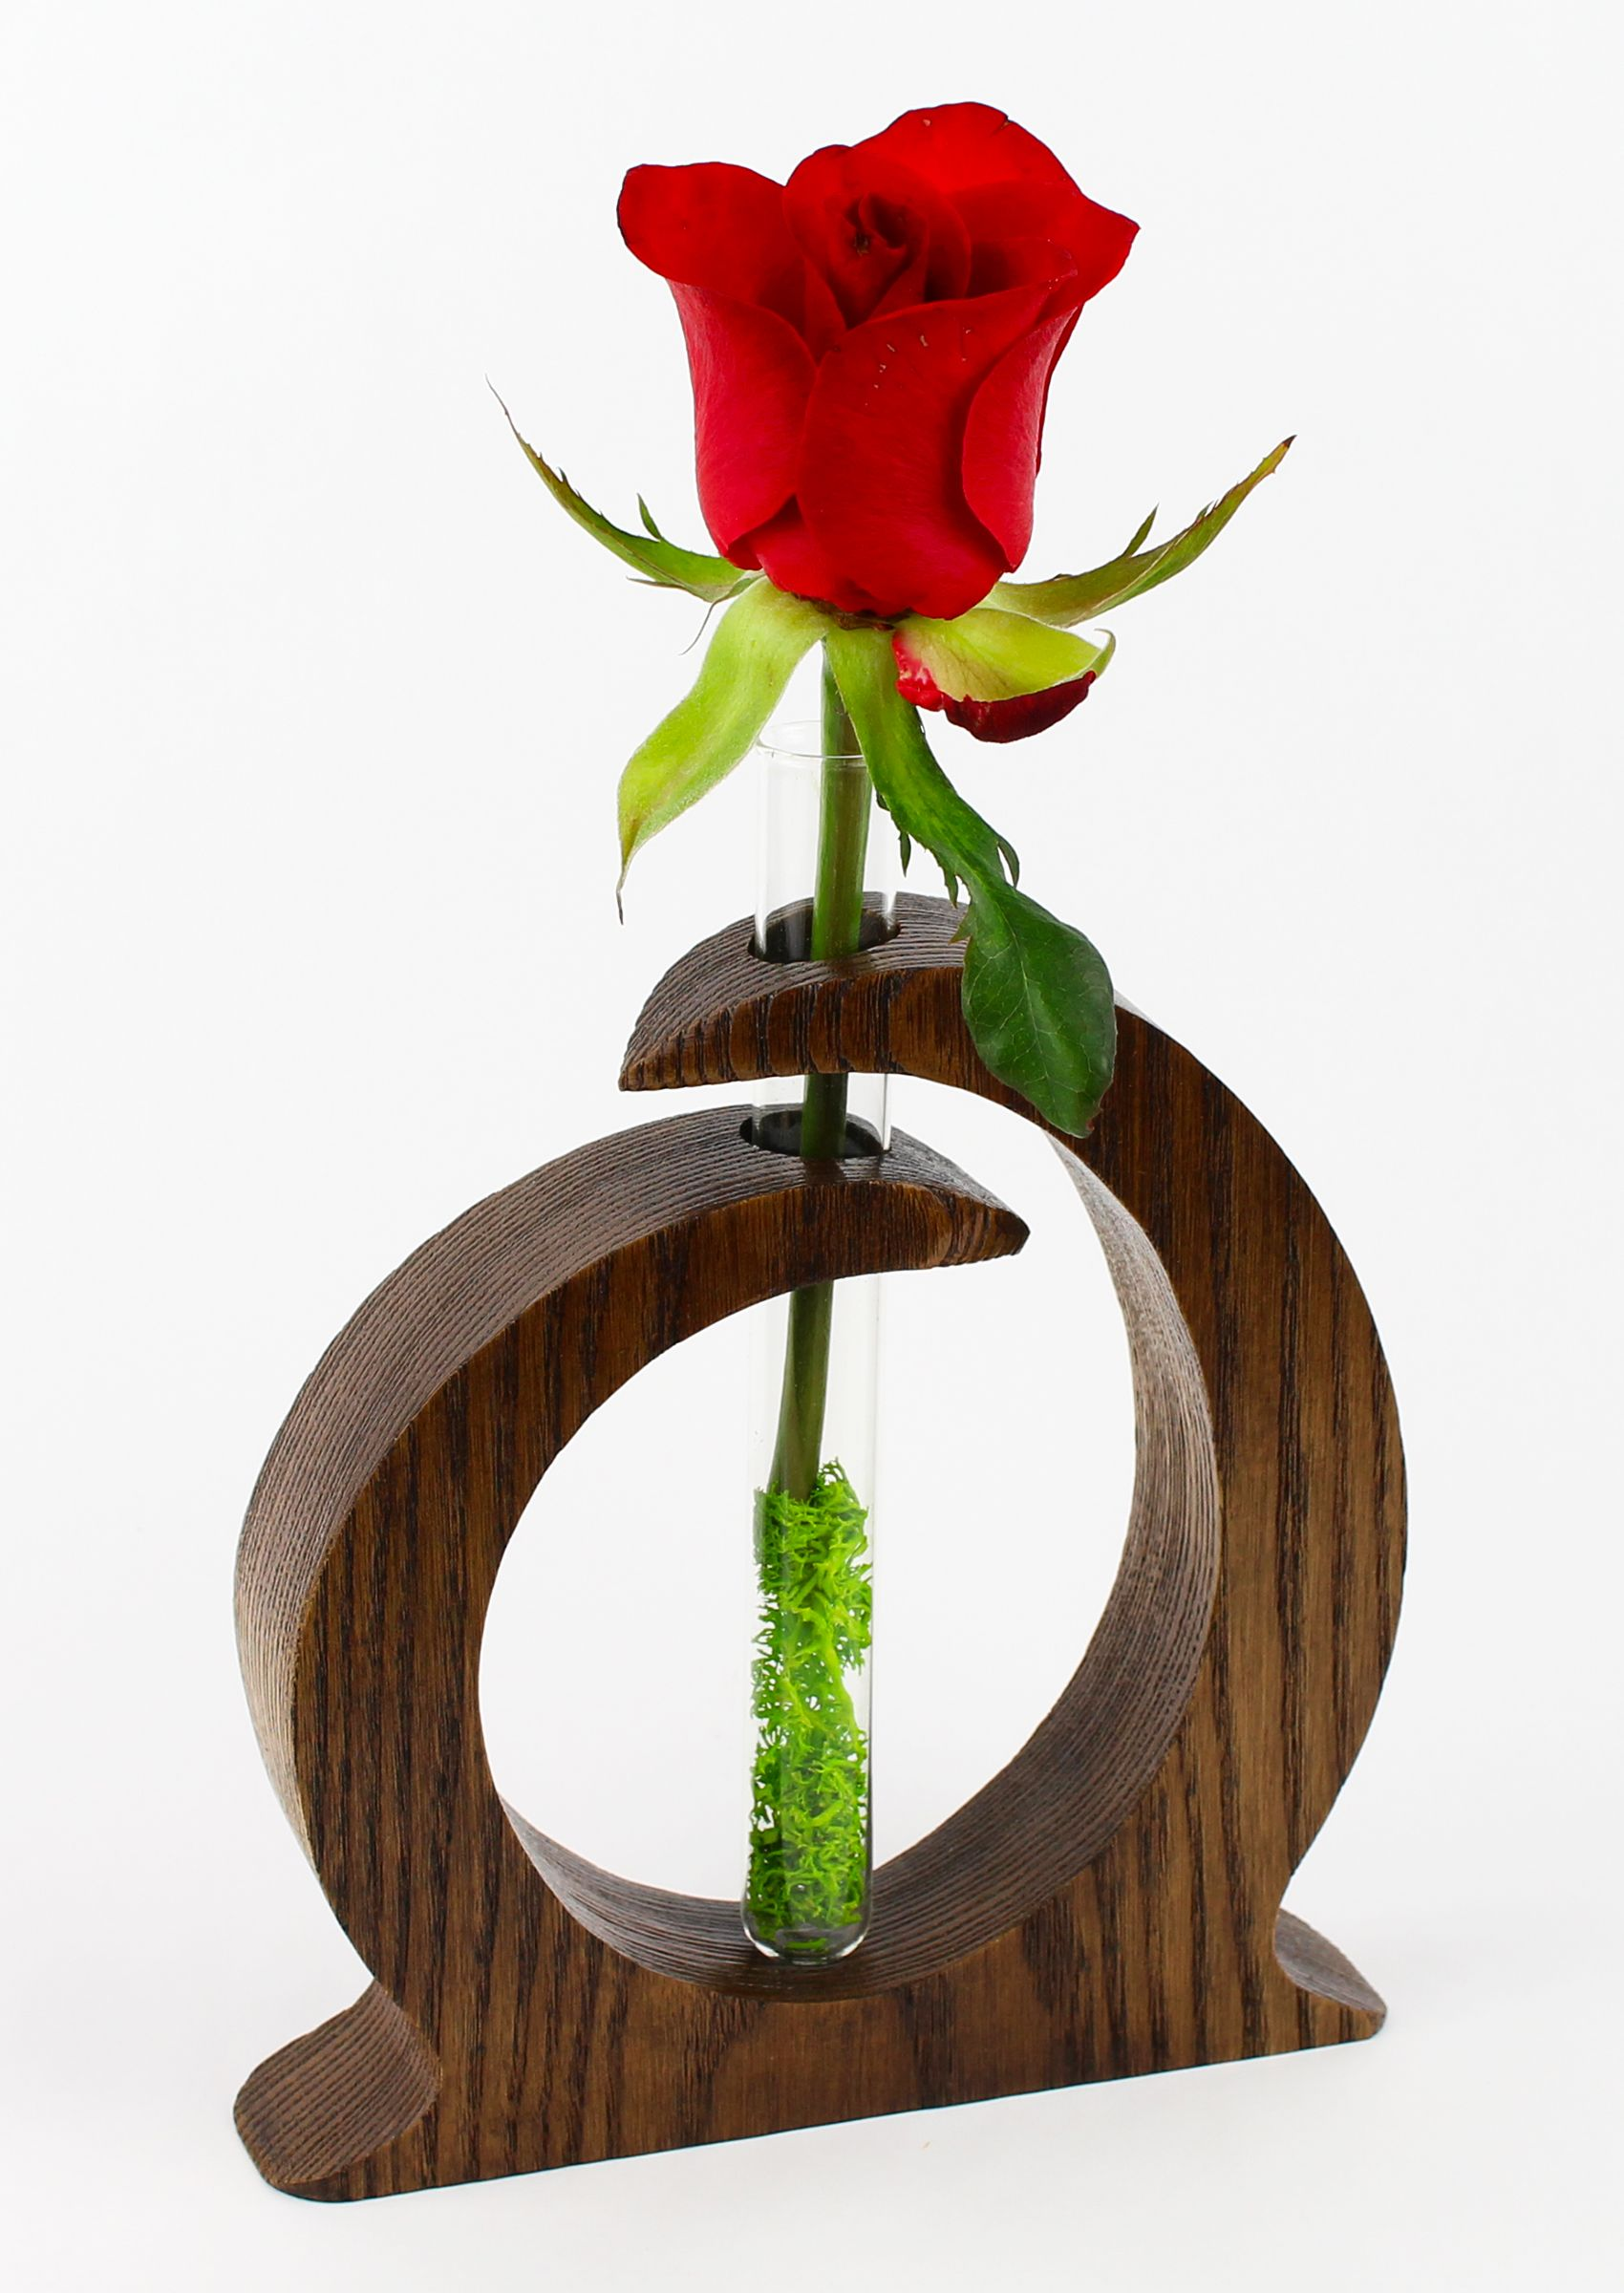 Pin On Wooden Sculptures By Woodsoulcarving